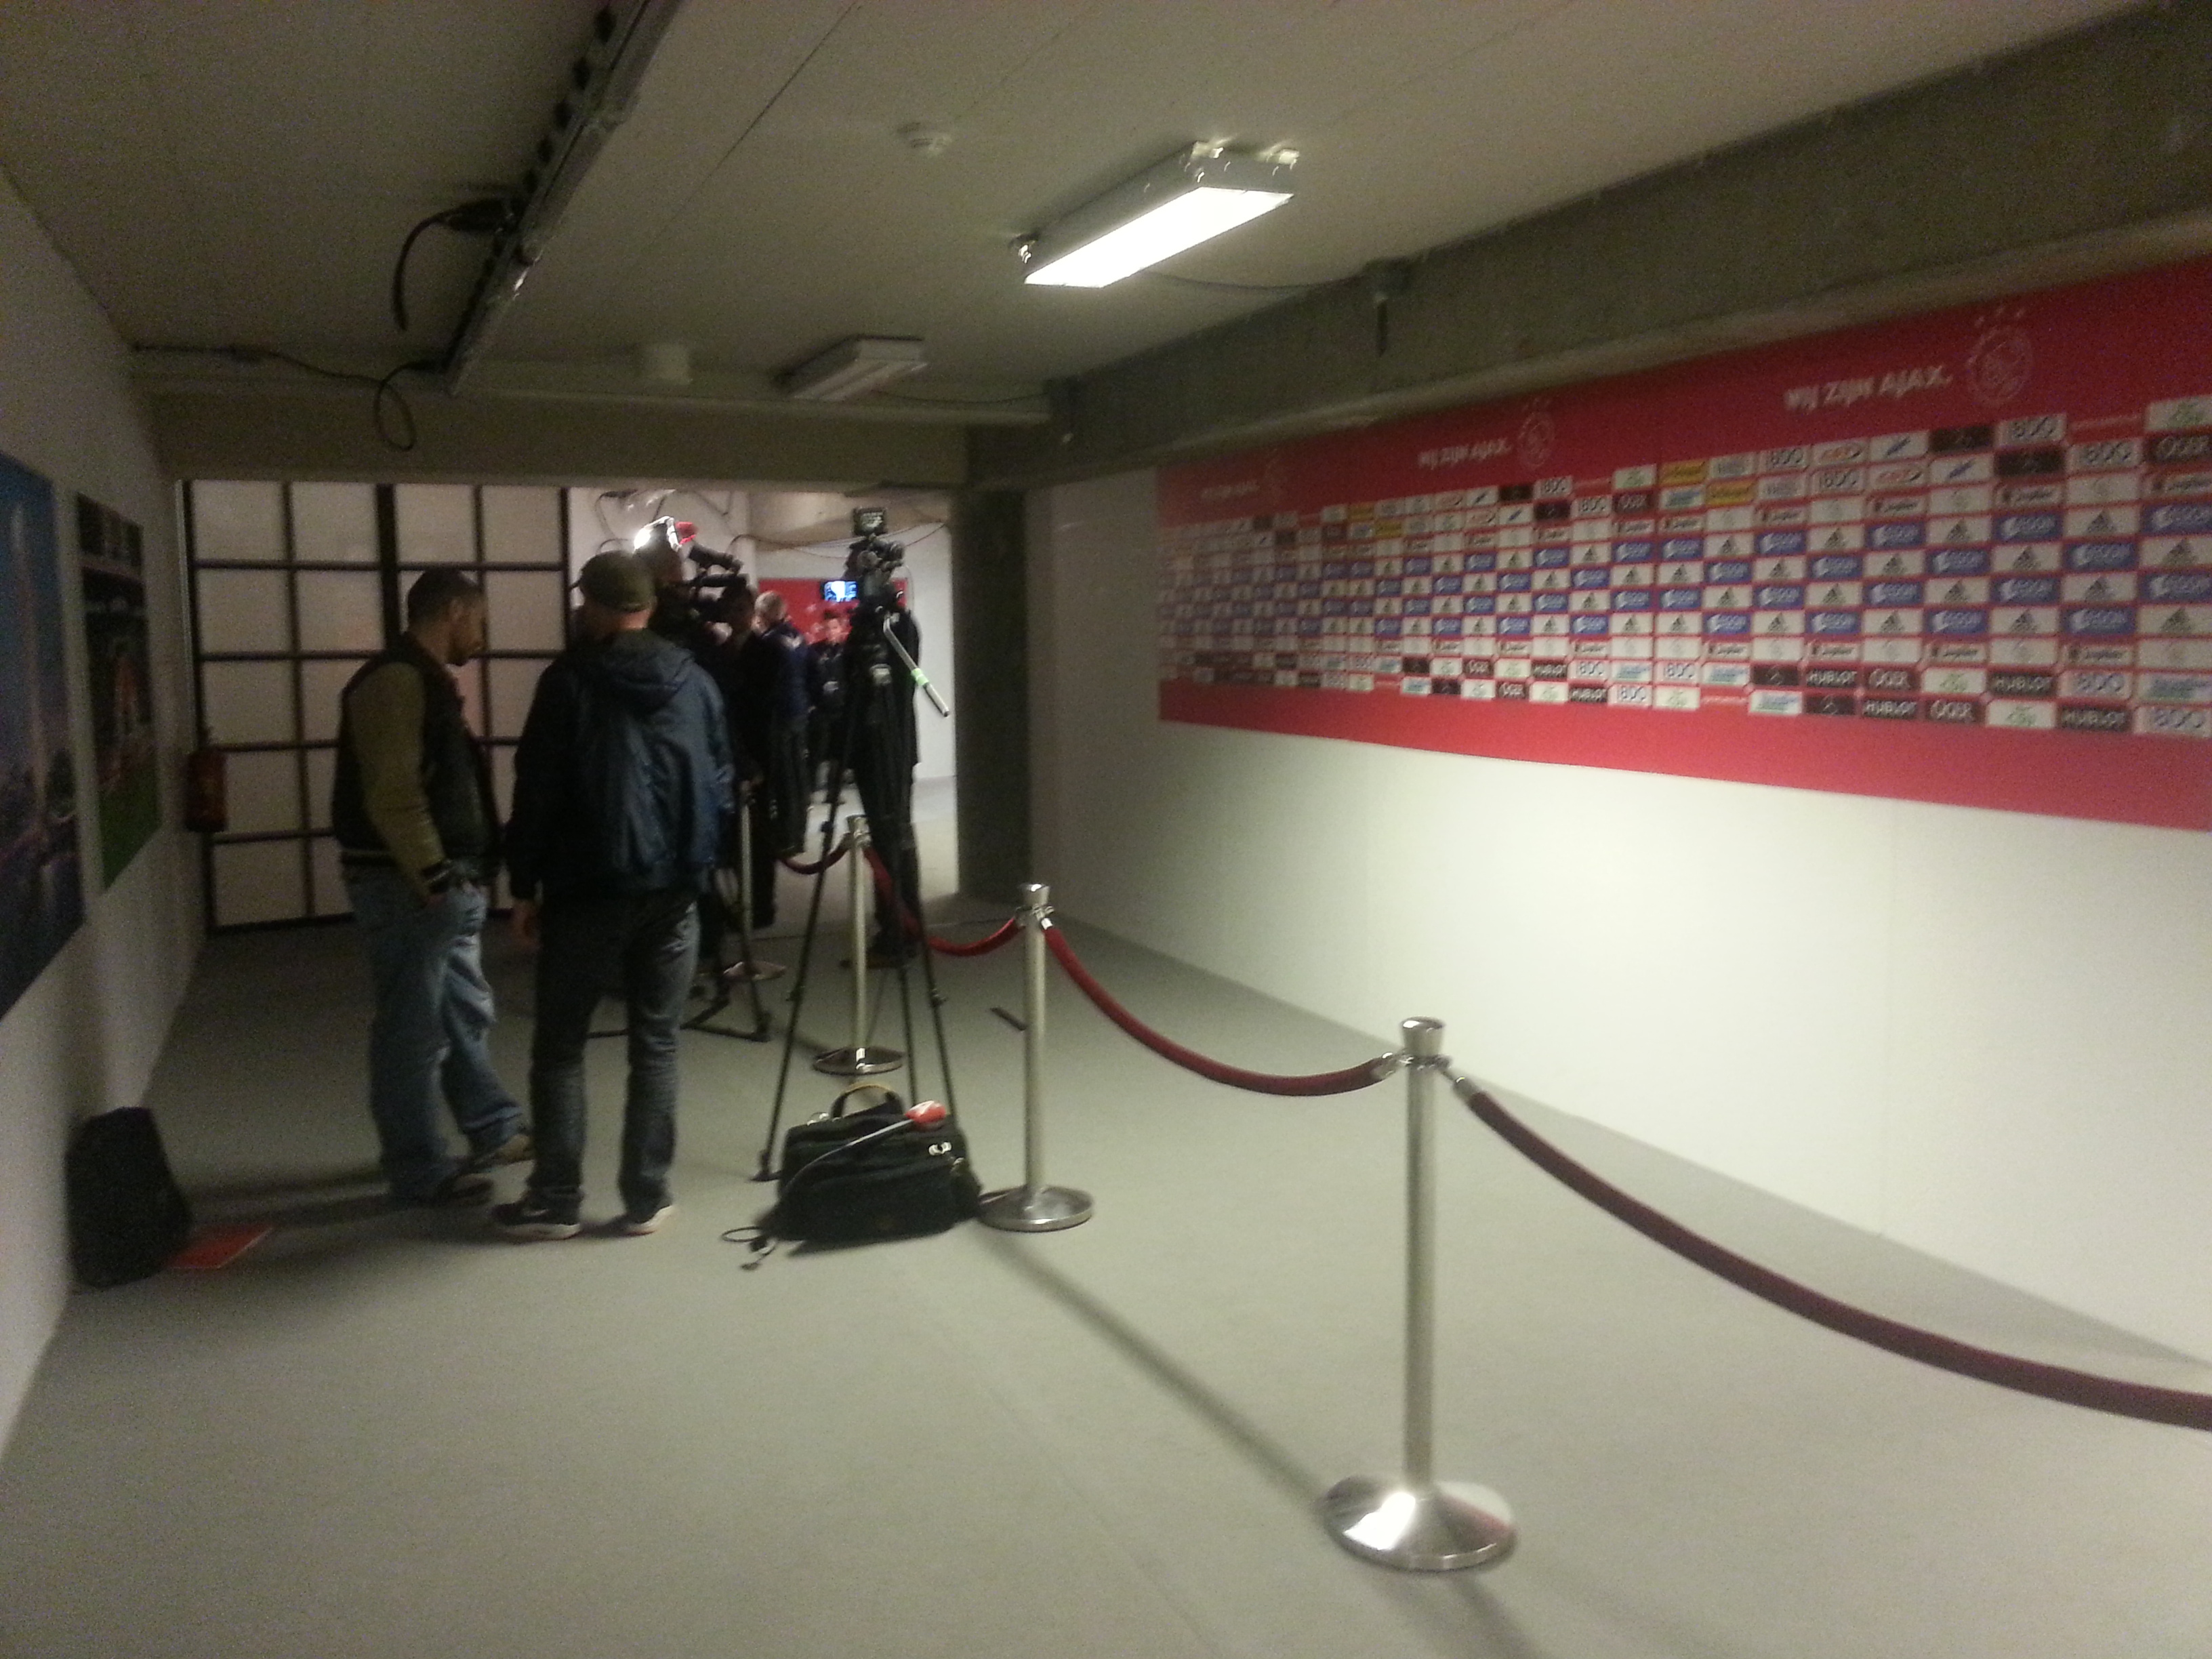 Mixed Zone Ajax - Cambuur